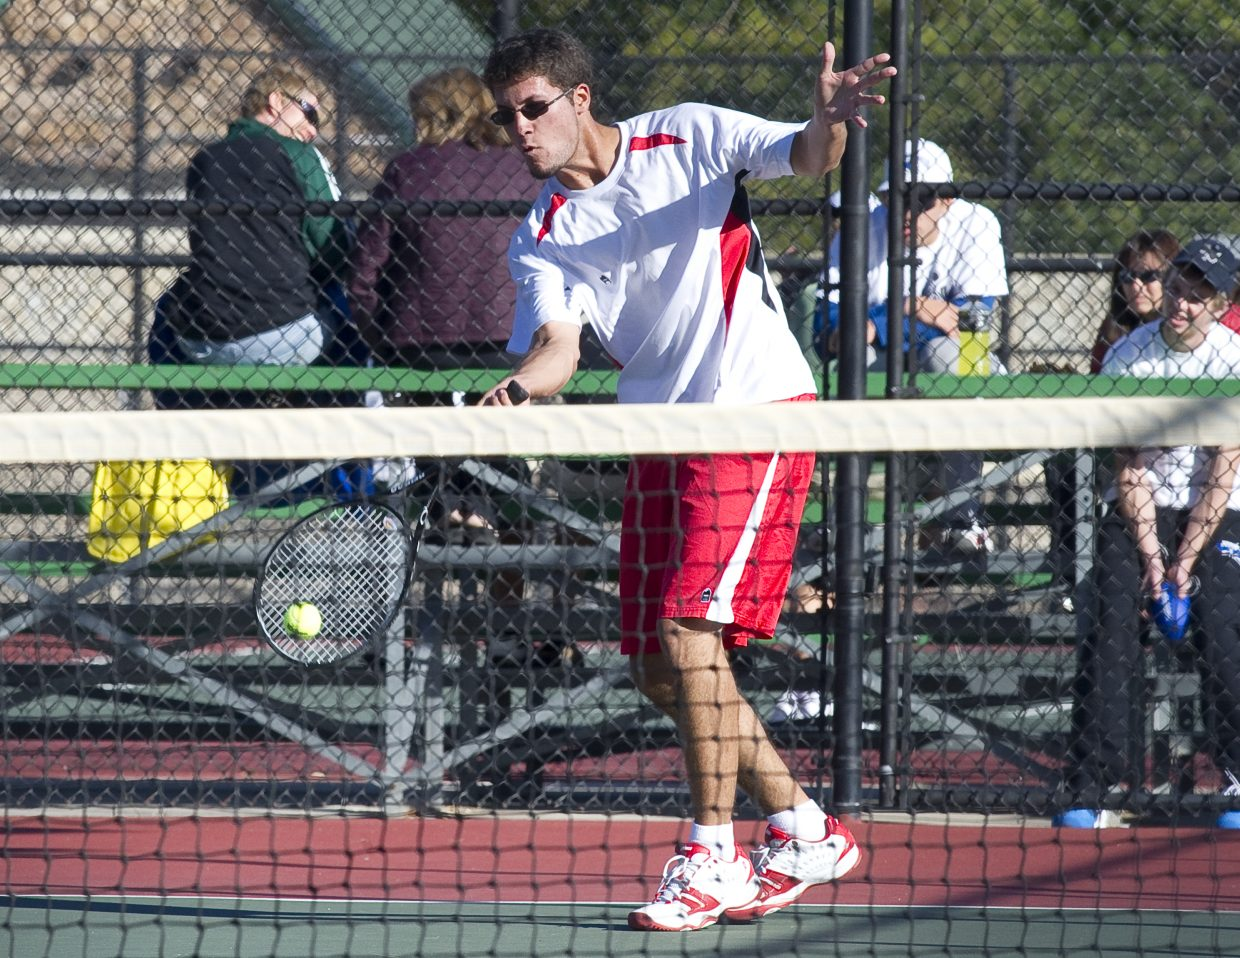 Steamboat's Mirko Erspamer lost to Broomfield's Zack Kusick, 6-1, 6-1, in the opening round of the state high school tennis tournament in Pueblo on Thursday.